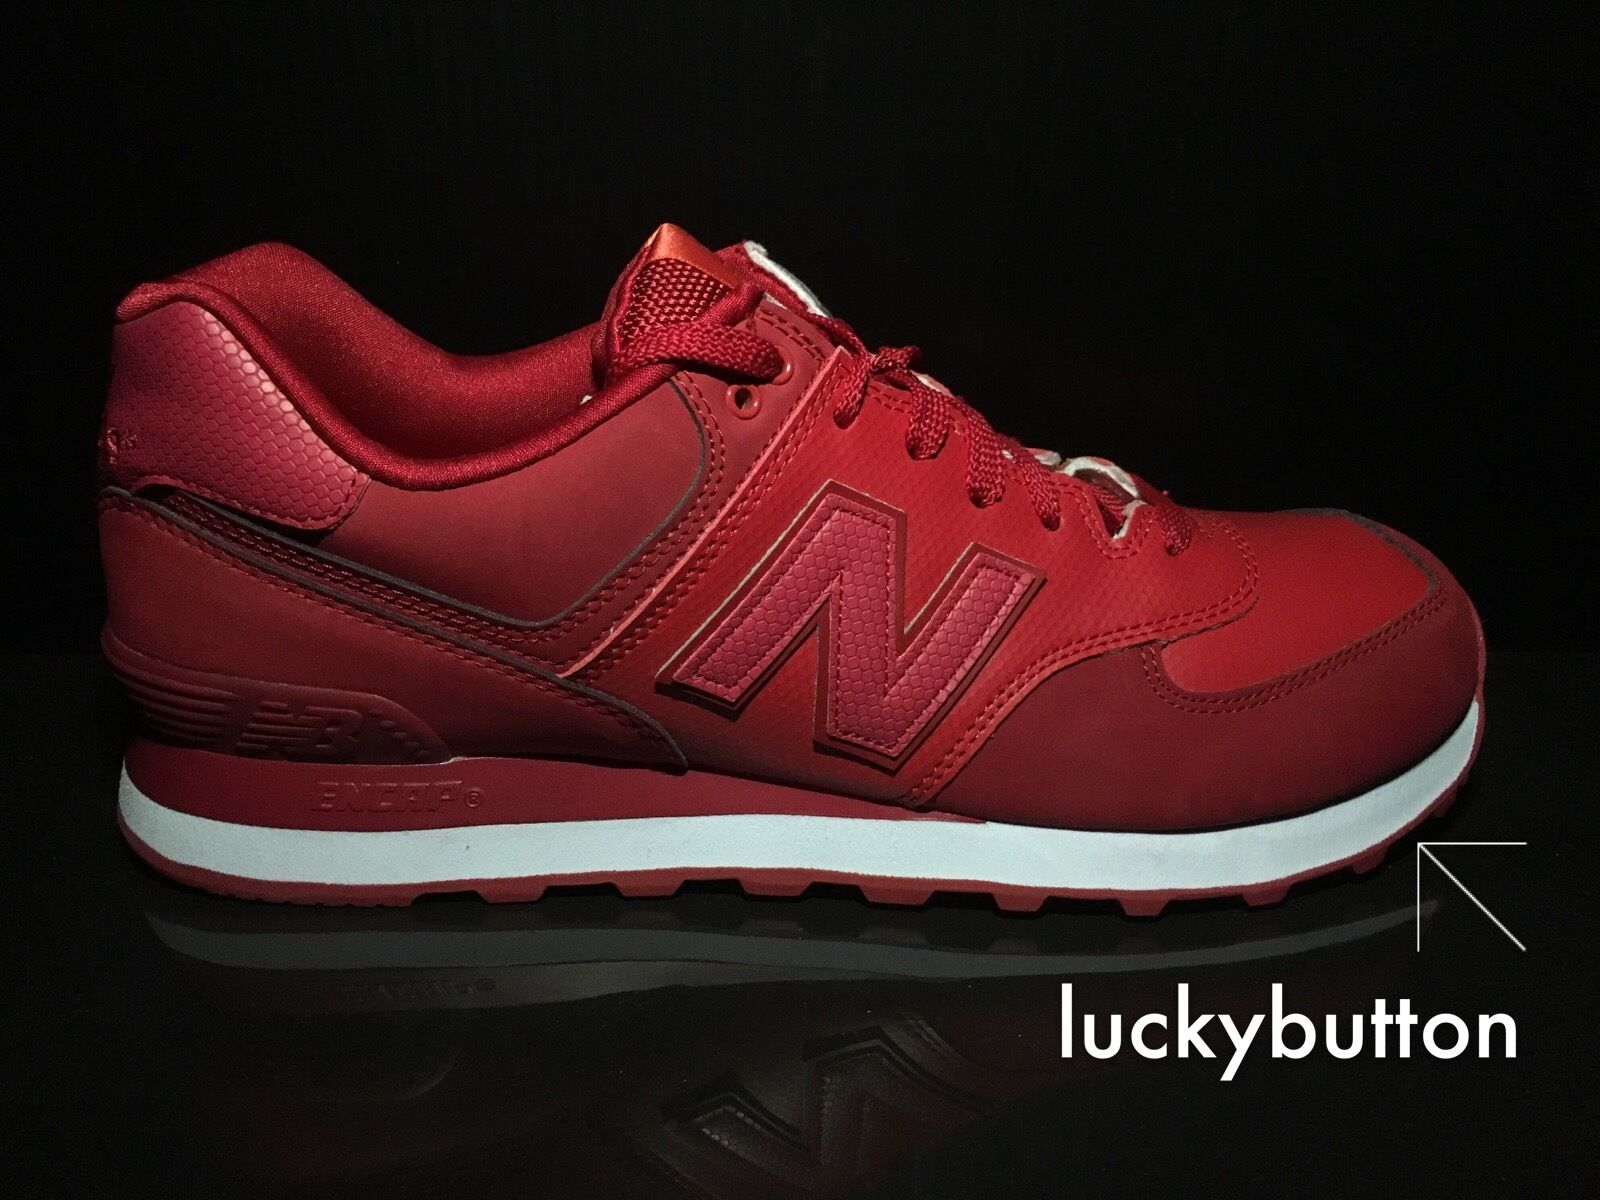 New Balance ML574RD Men's Red/White Running Casual Shoes US 10.5